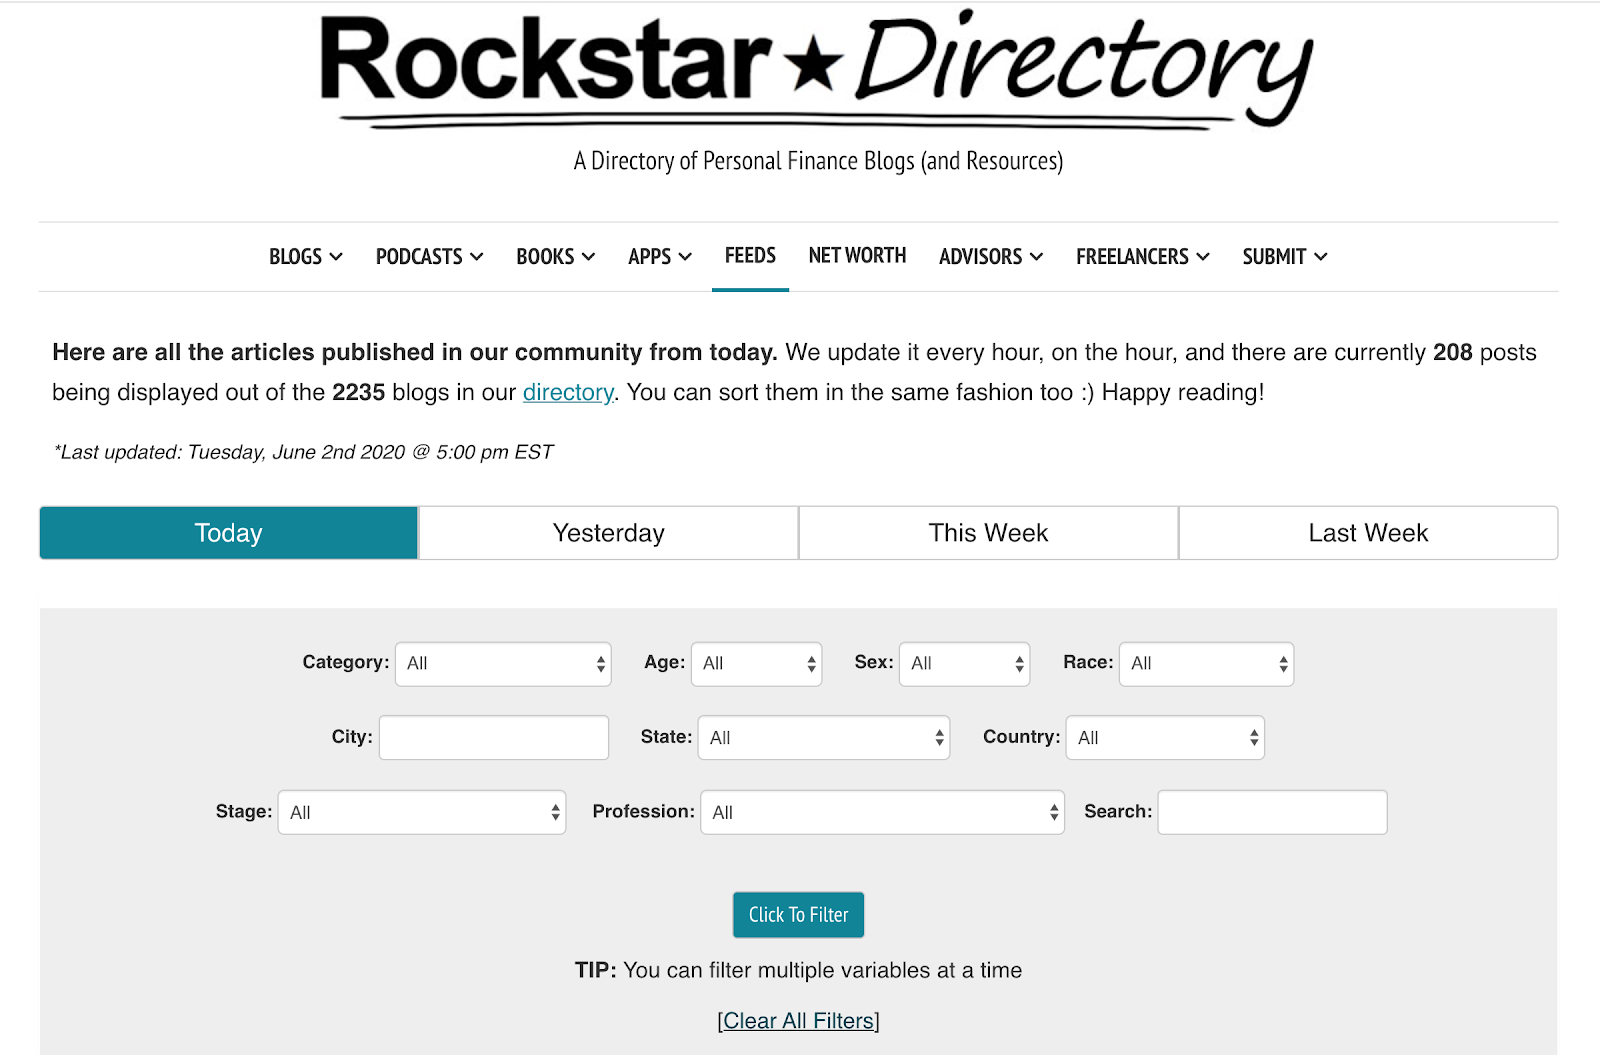 Rockstar Directory search feature interface